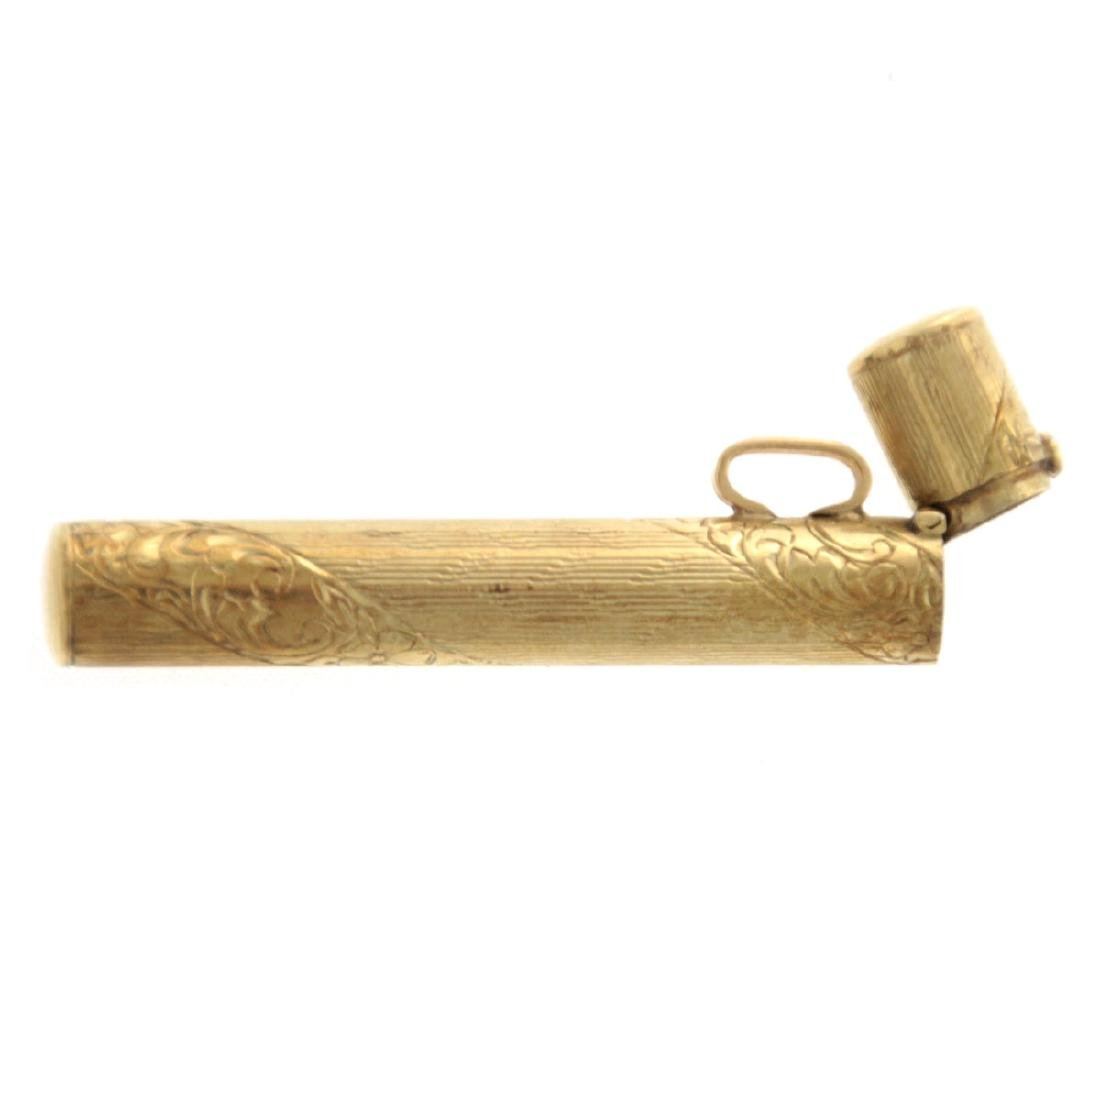 14k Yellow Gold Mezuzah Case Pendant. - 3